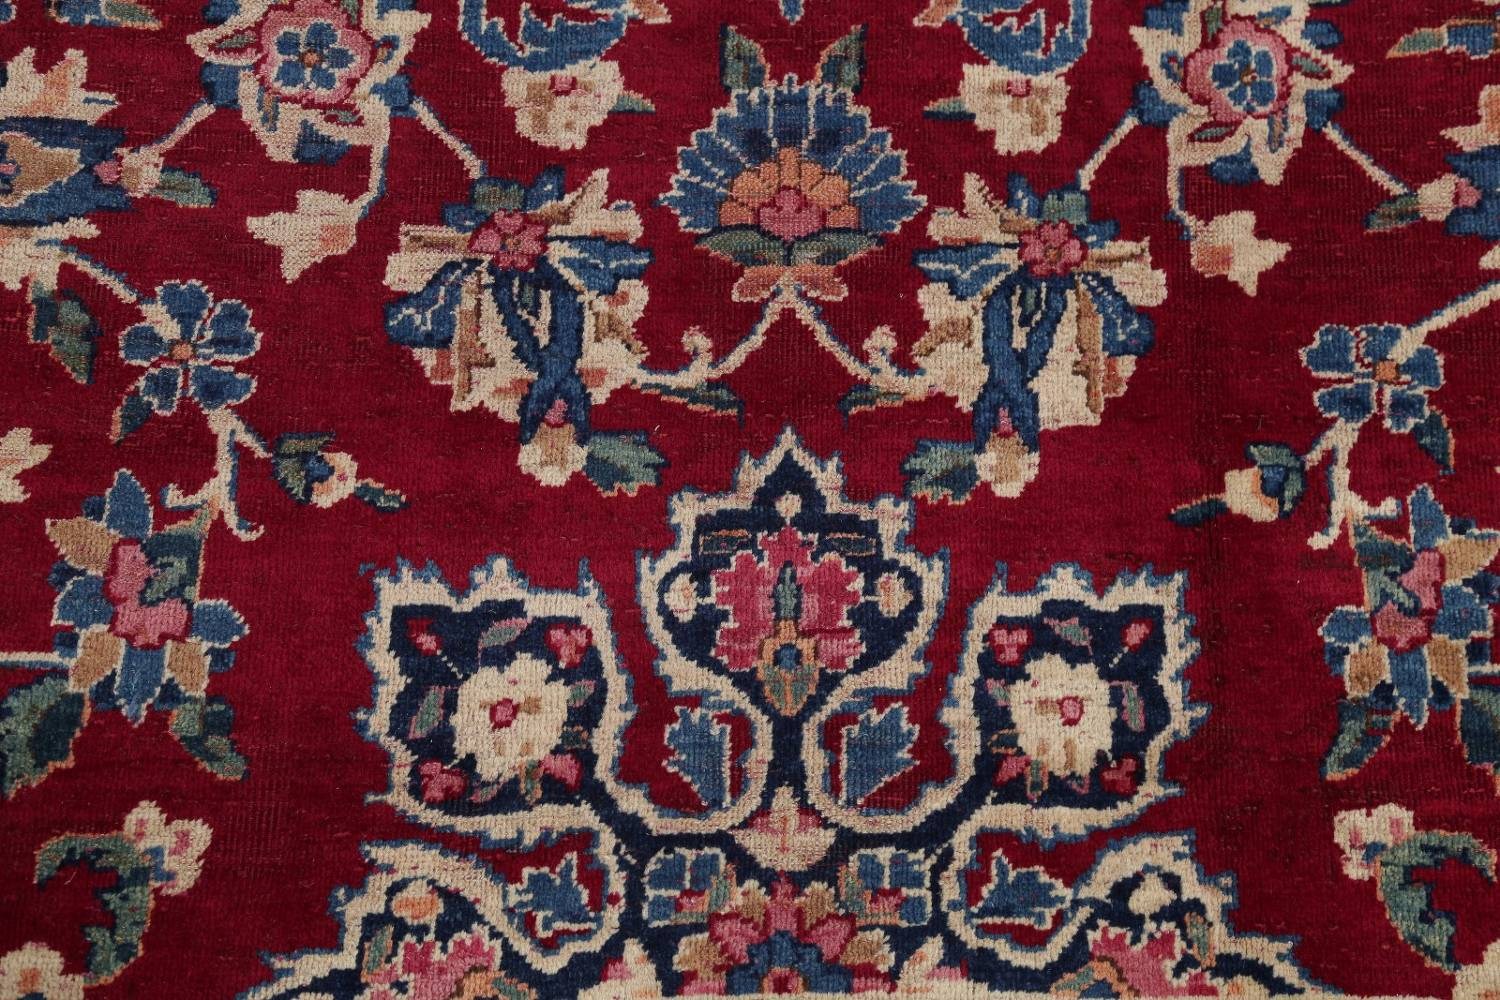 All-Over Floral 11x16 Yazd Persian Area Rug image 10